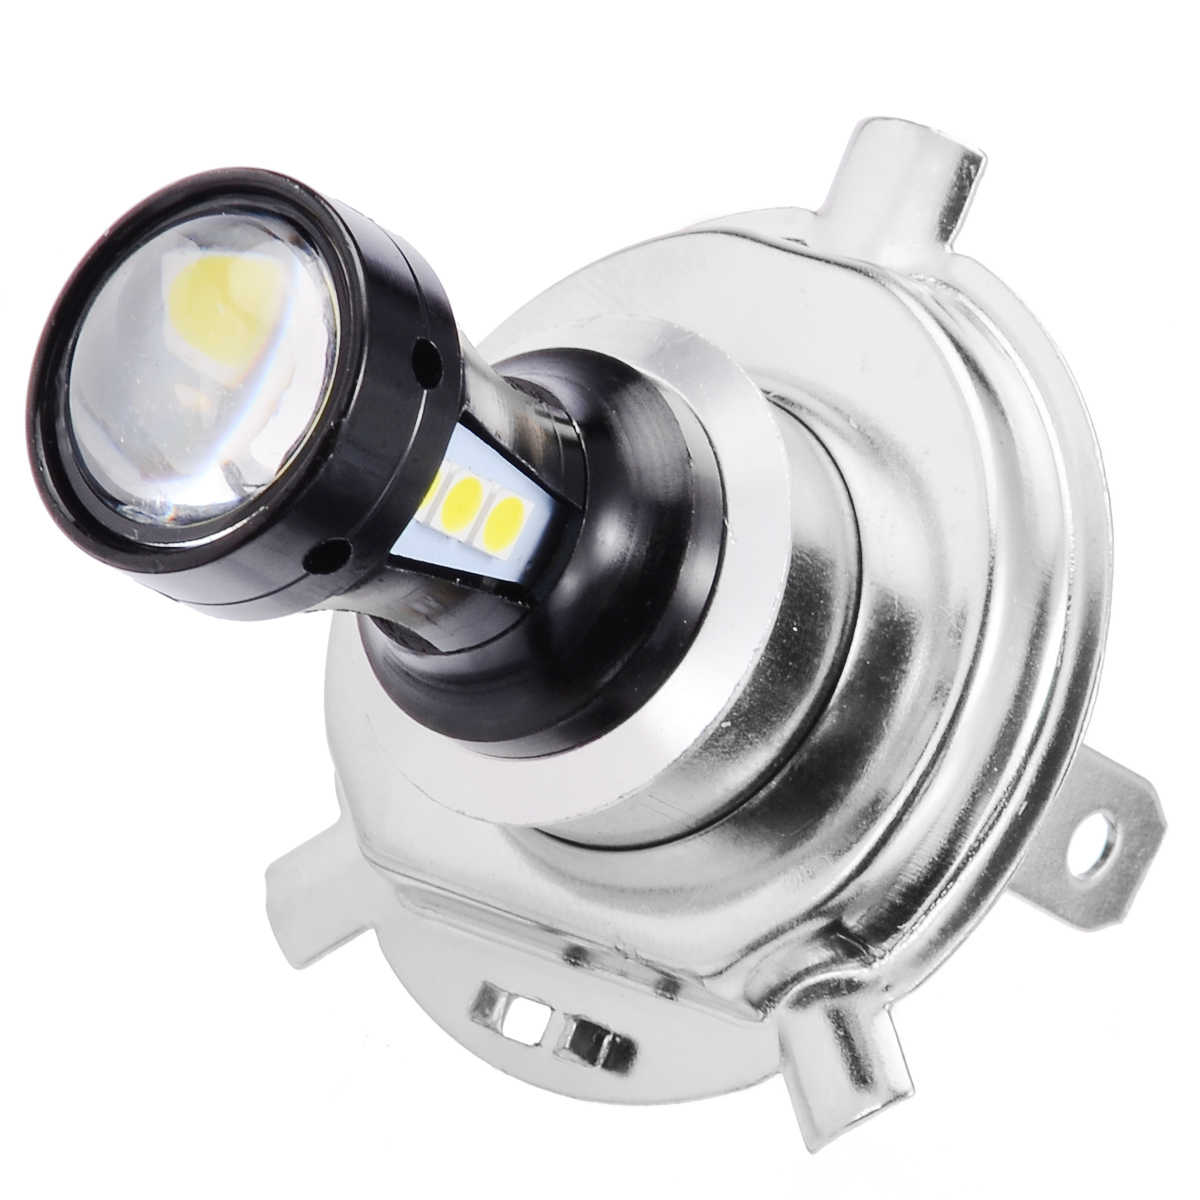 6500K Super White H4 Headlight 3030 LED Motorcycle Hi-Lo Beam Head Light Lamp Bulb for Motorcycle Lighting